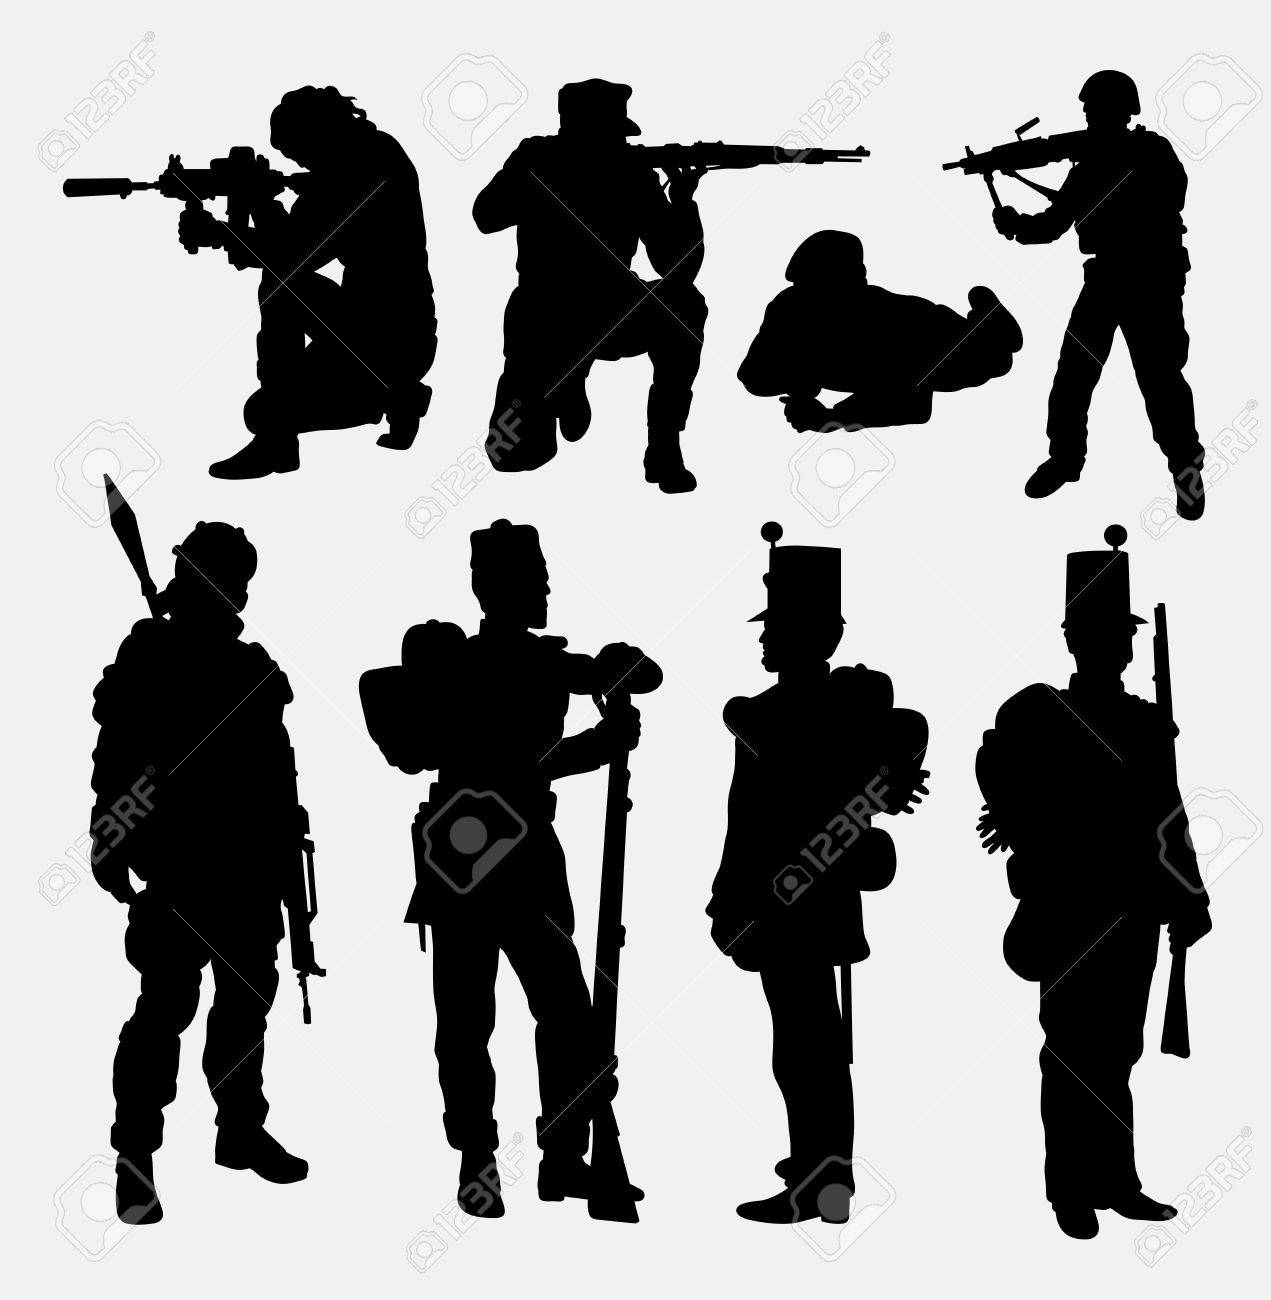 Soldier army military training and exercise silhouette good use for symbol